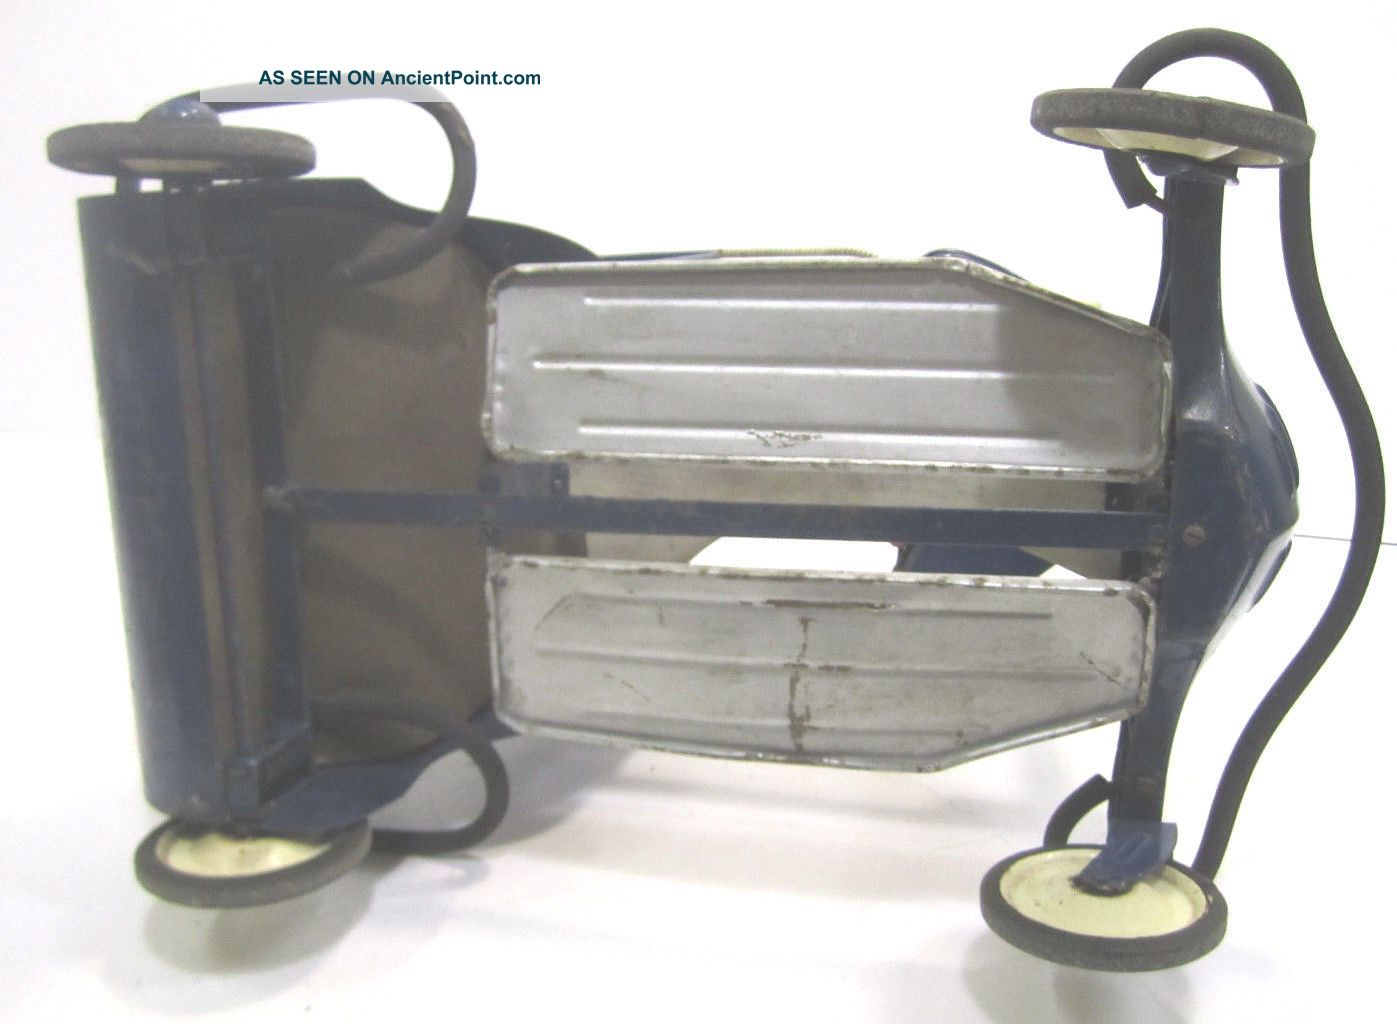 Vintage Taylor Tot Metal Baby Stroller Walker Blue White 1940s - 50s Baby Carriages & Buggies photo